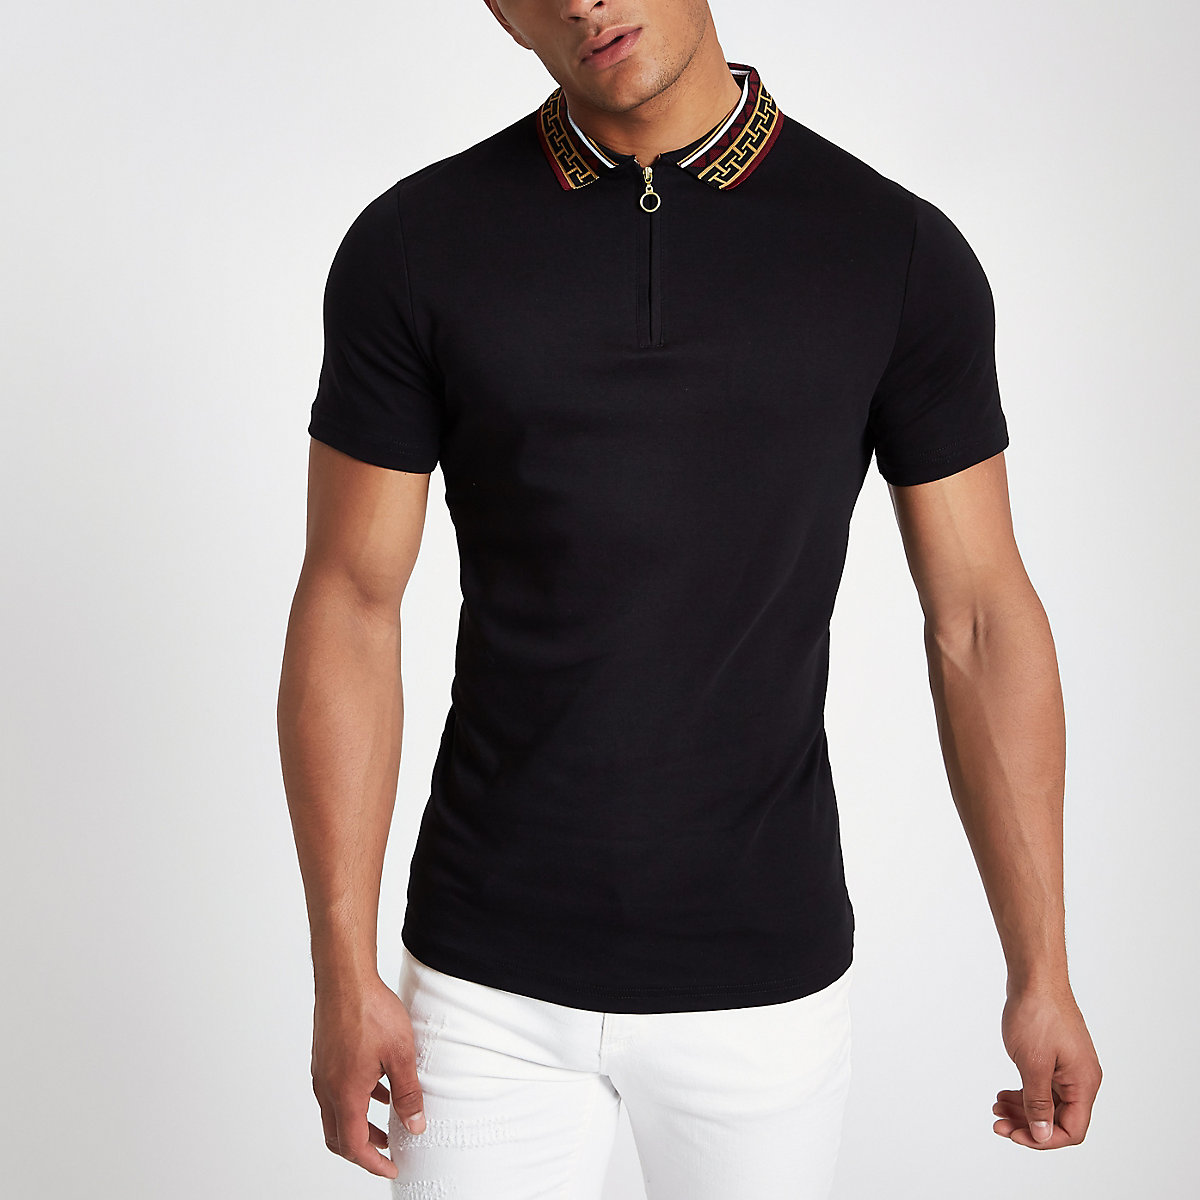 Black baroque collar muscle fit polo shirt